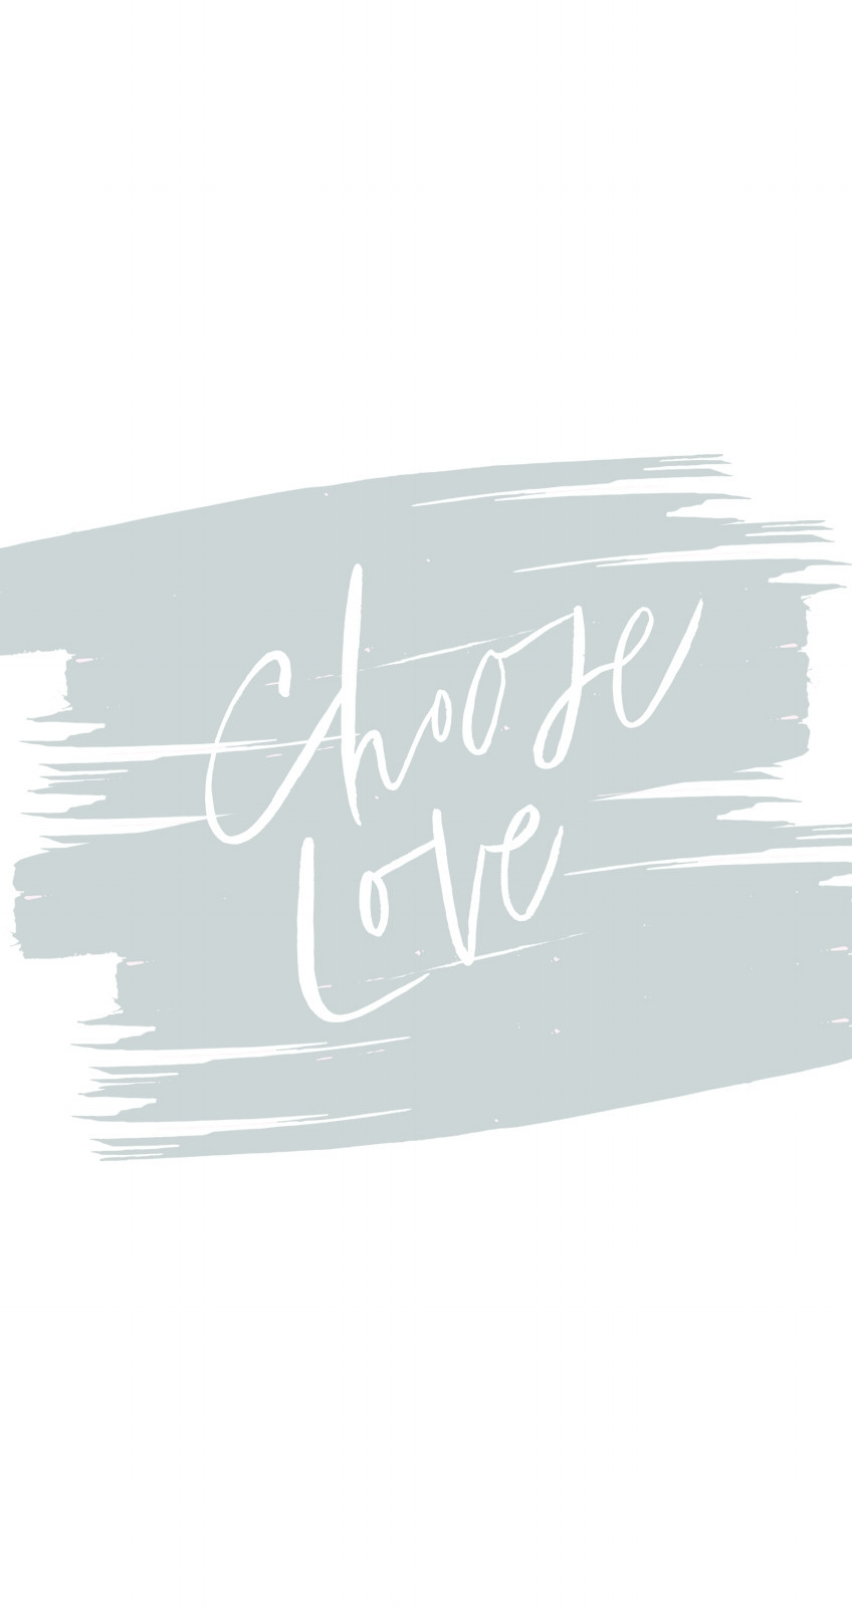 Downloadable Phone Backgrounds | Jennifer Diaz | Hand Lettering by Amy May Paper | Choose Love